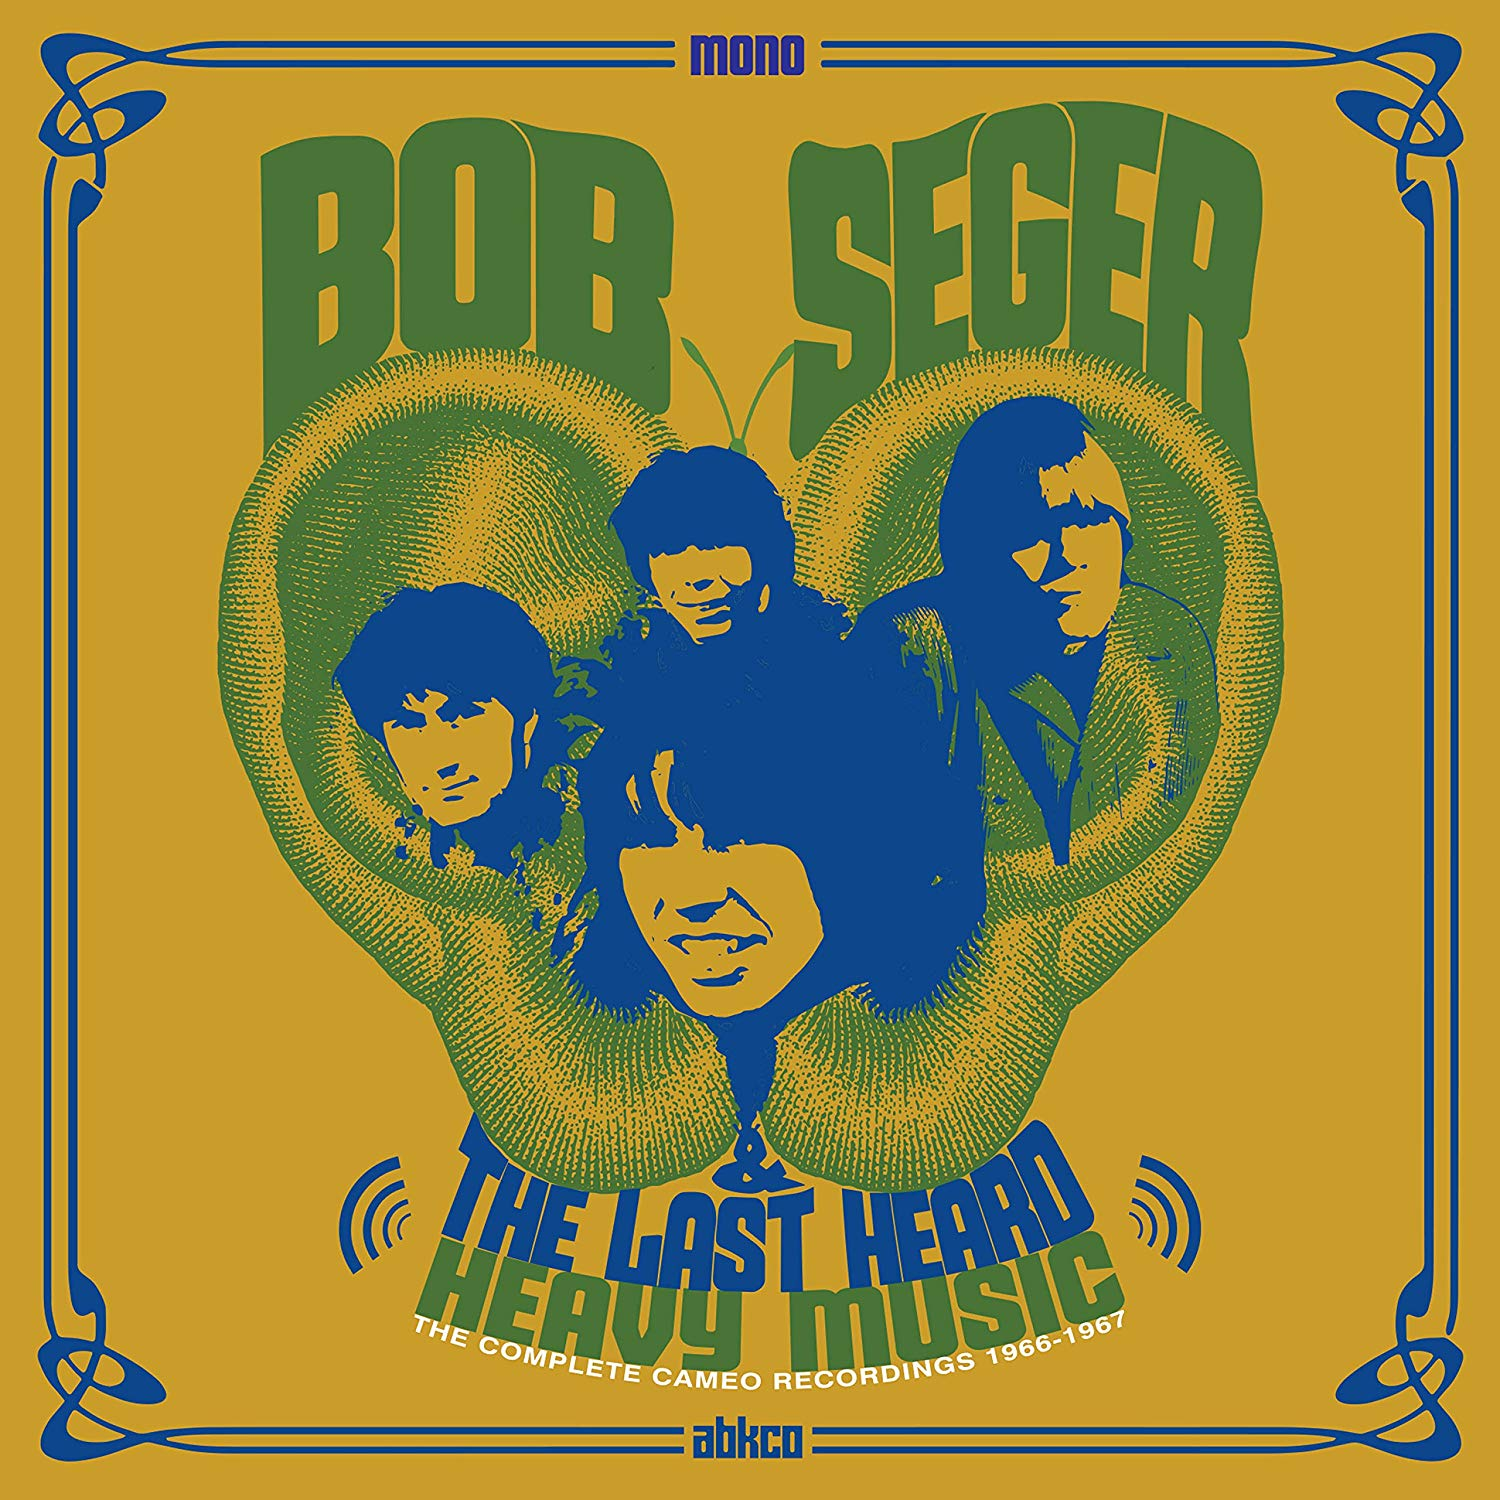 Bob Seger Early Recordings Coming Listen Best Classic Bands